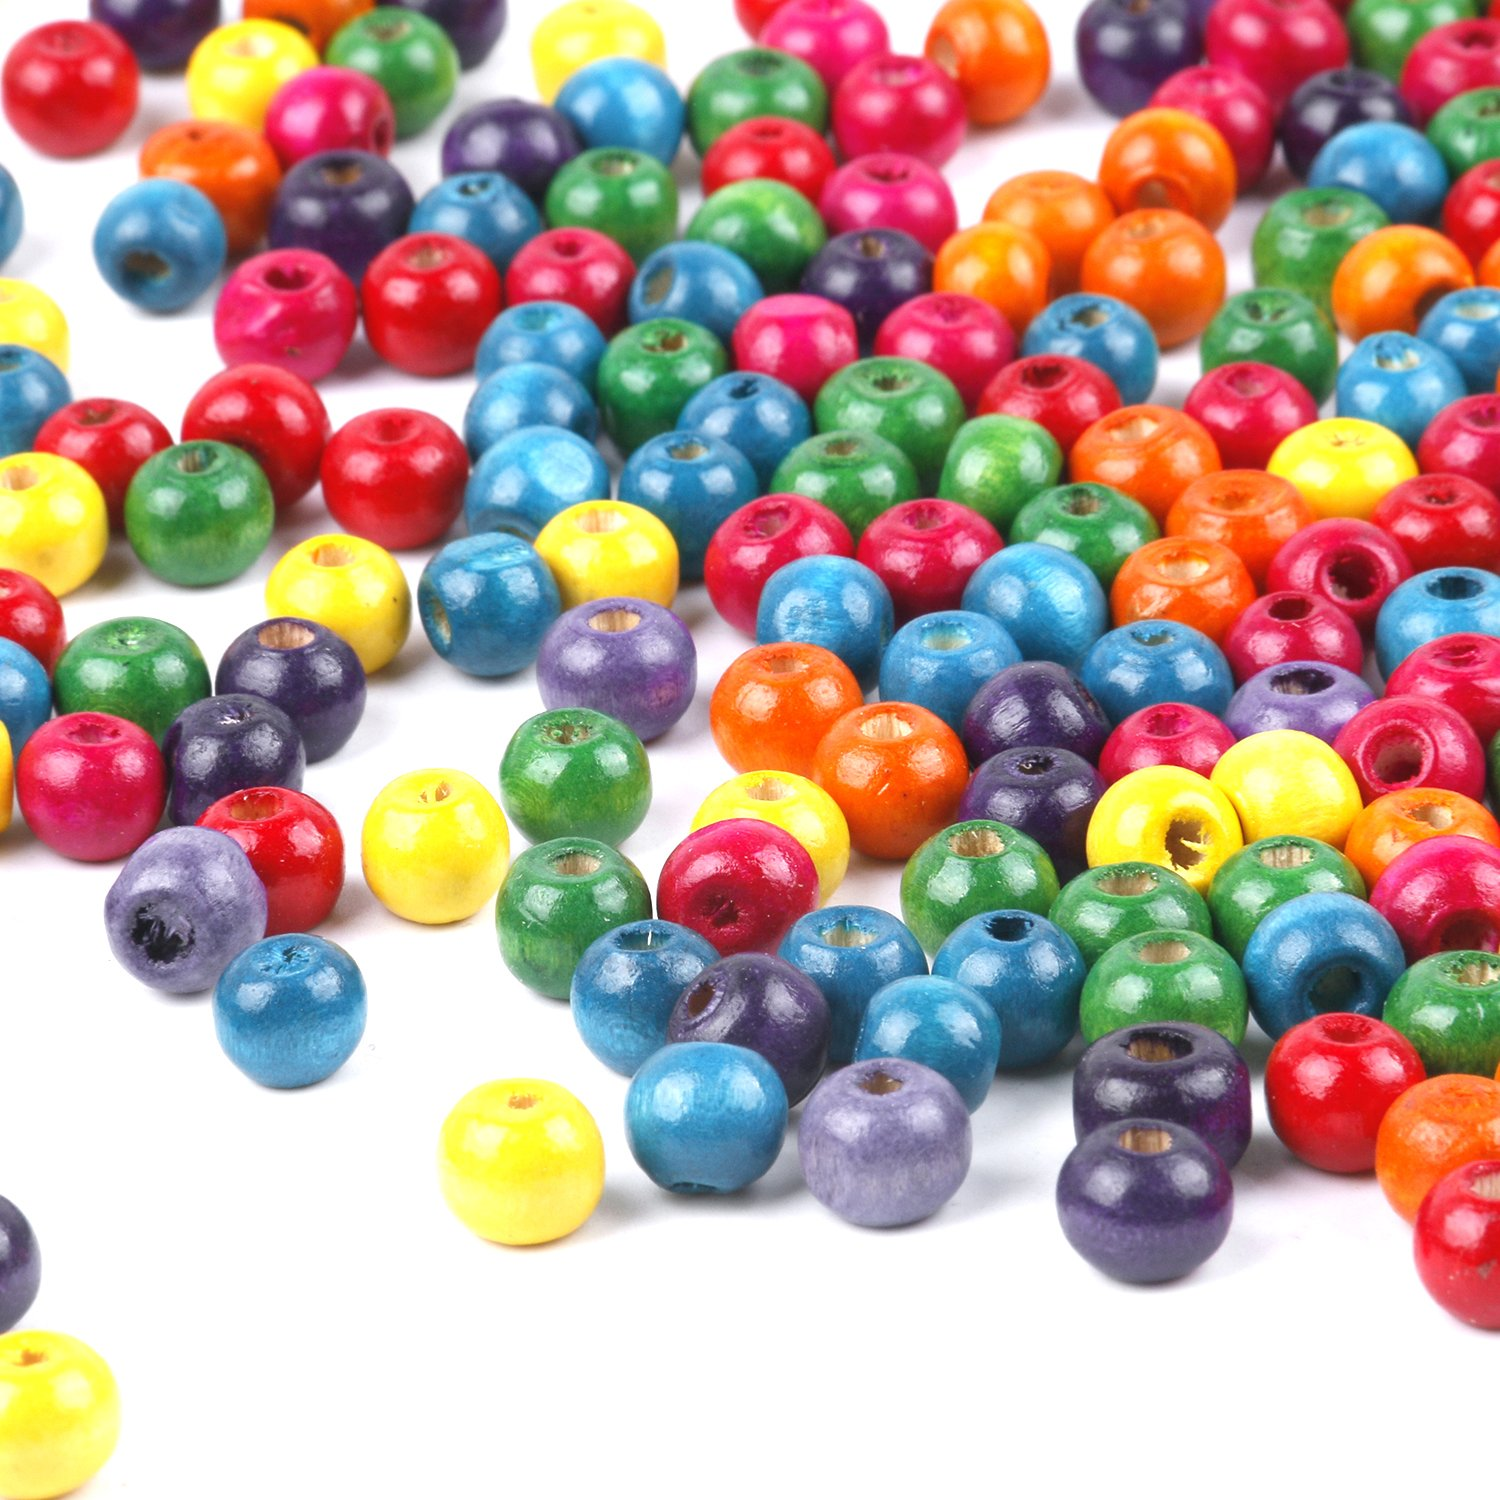 TRIXES 500 Mixed Colourful Wooden Beads 7mm Jewellery Arts Crafts Necklace Bangle